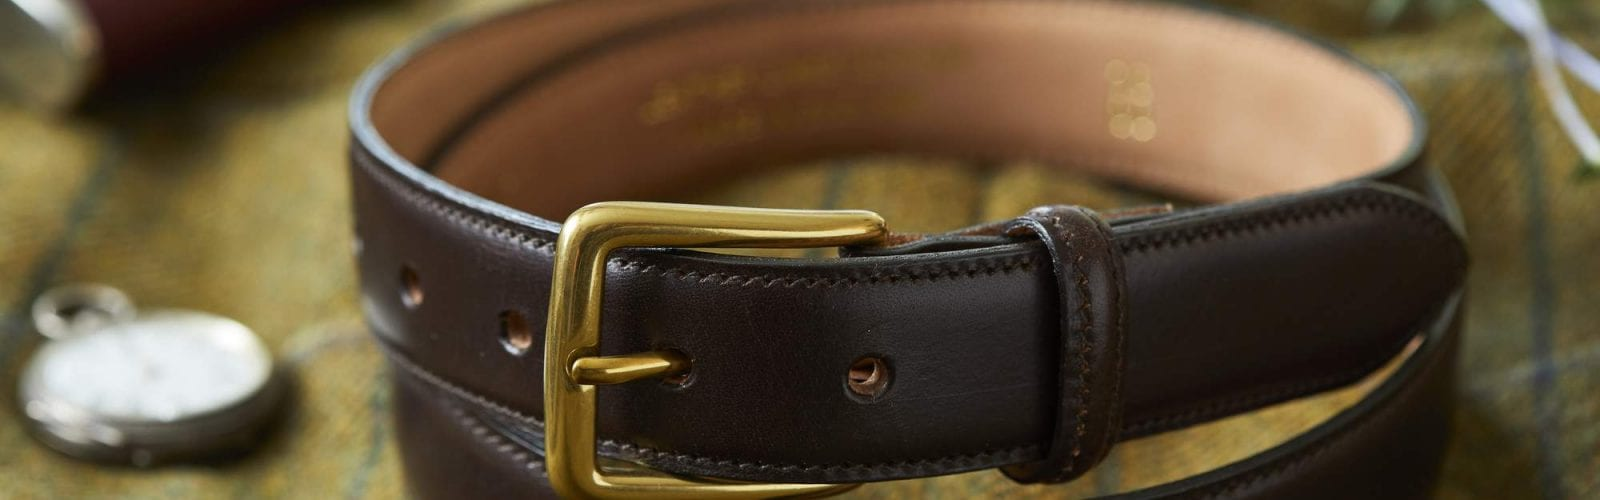 Belts by Cuyler & Davy